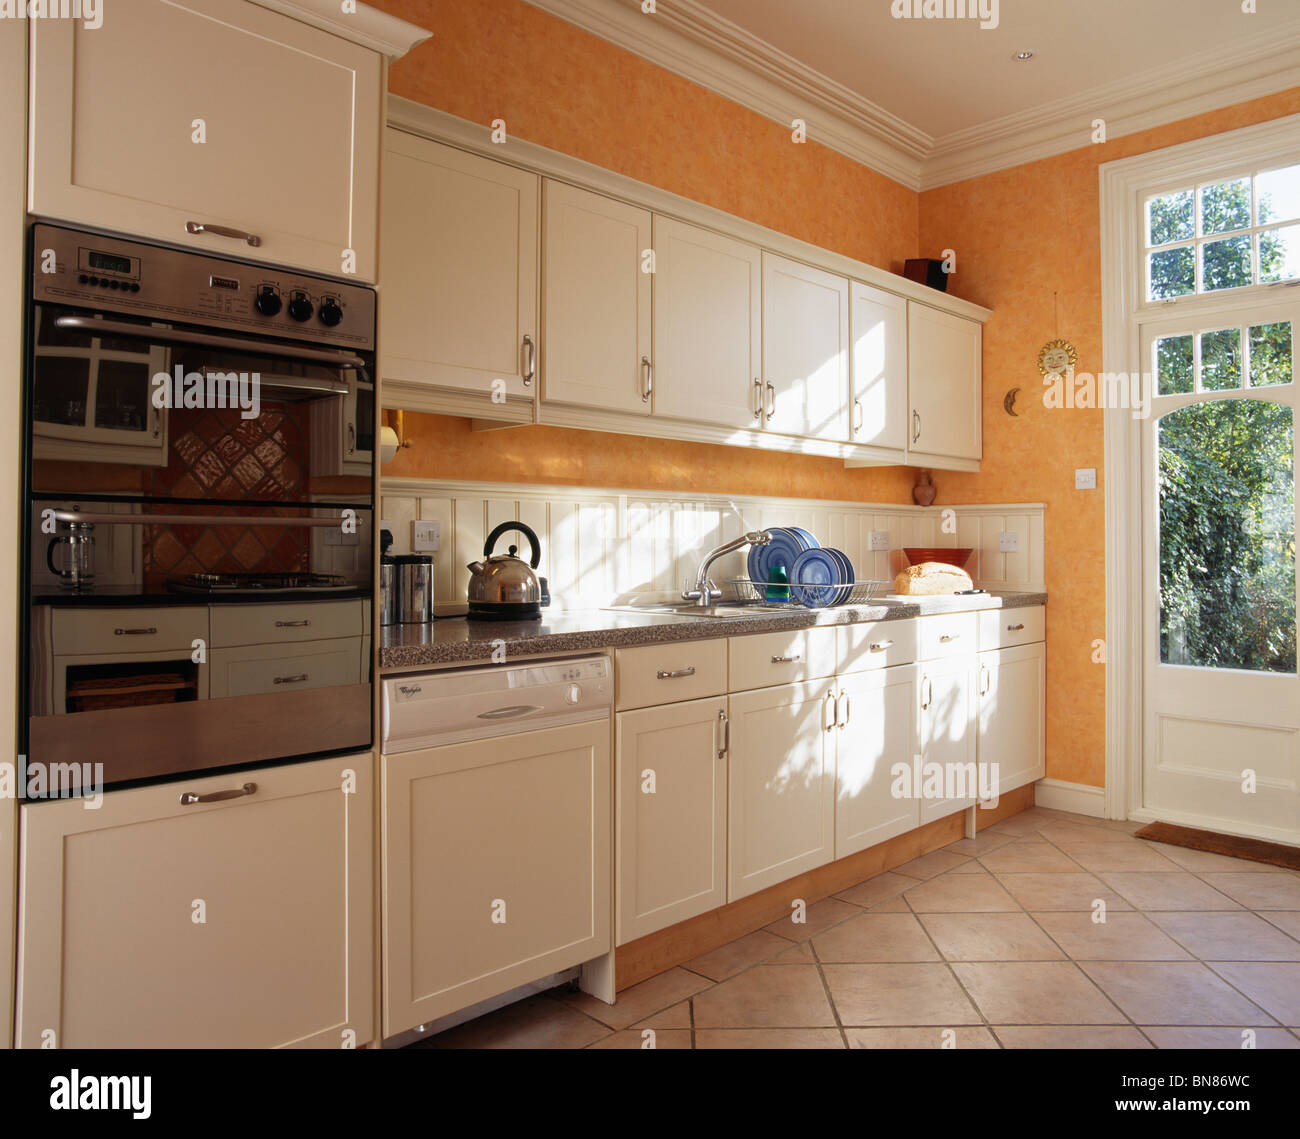 Modern Kitchen Oven: Eye-level Oven In Modern Orange Kitchen With White Fitted